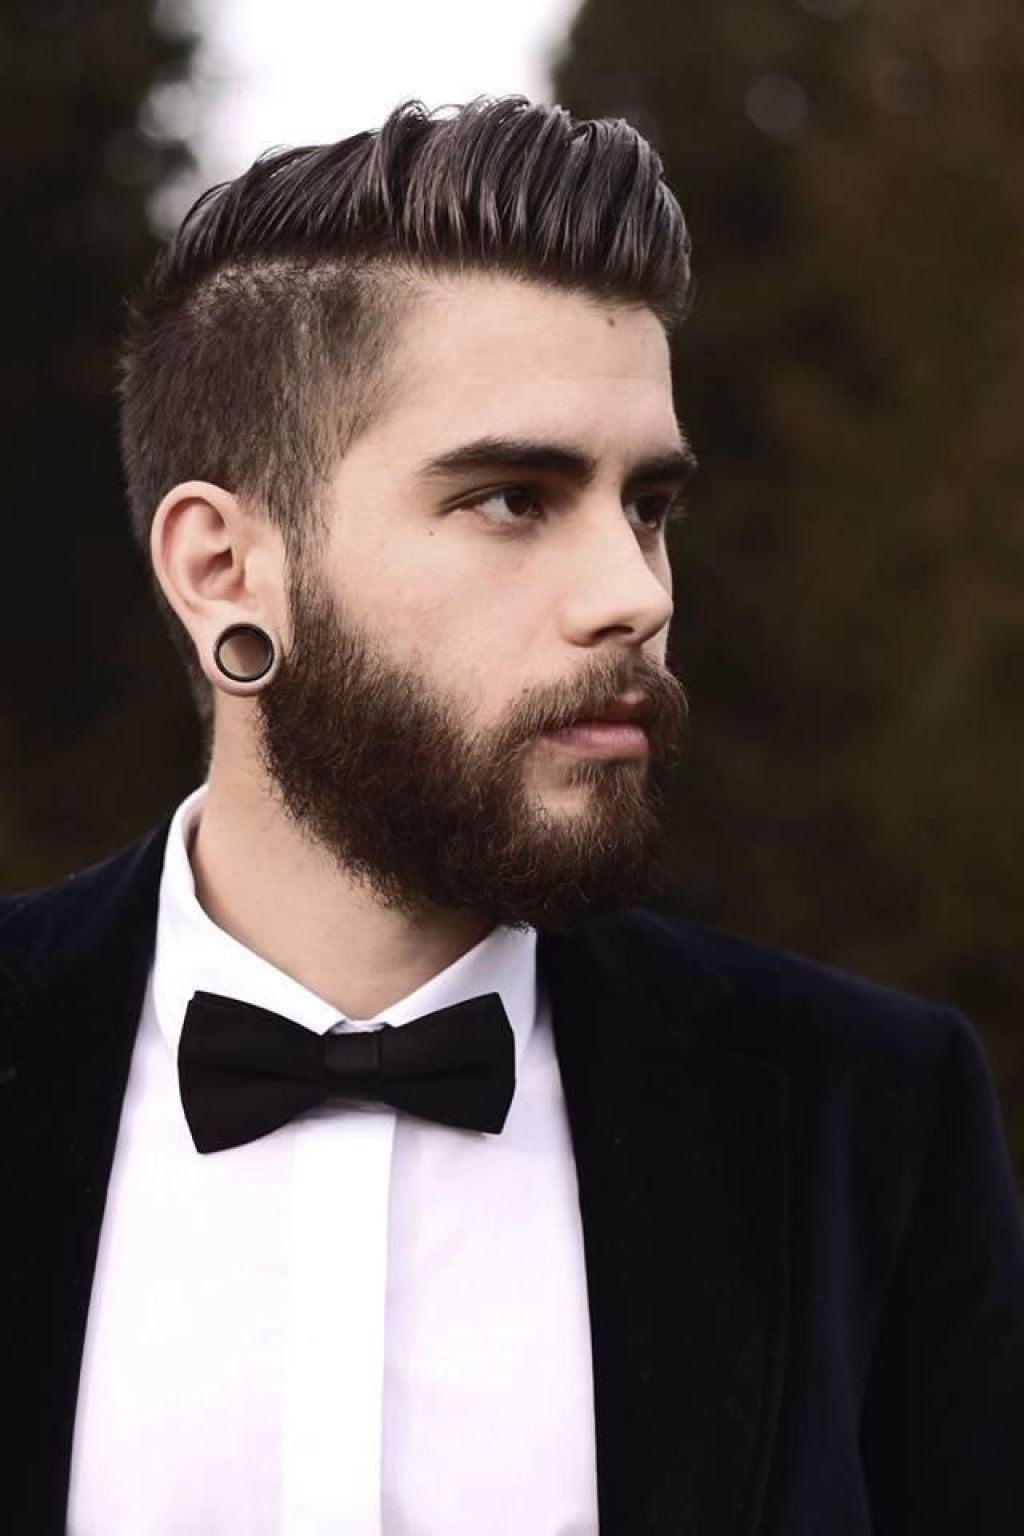 hipster haircuts men 2015 undercut style with big ear piercings and beard this style is giving. Black Bedroom Furniture Sets. Home Design Ideas